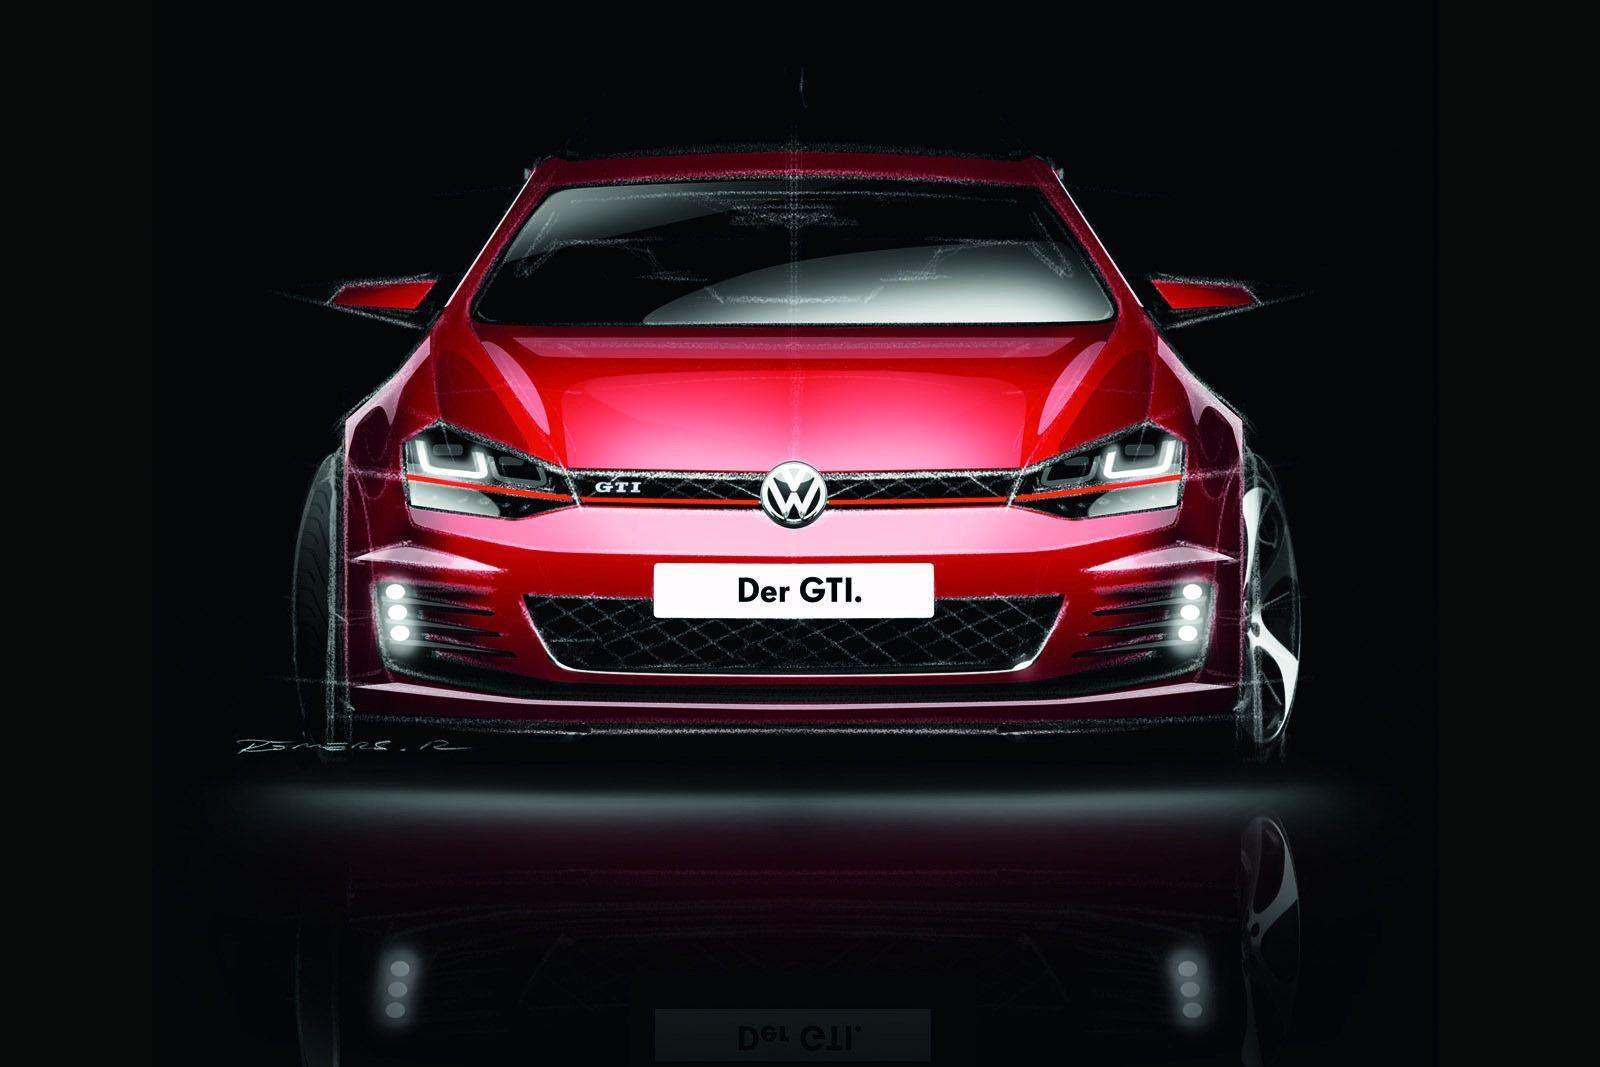 Volkswagen Golf GTI Mk7 wallpapers - Auto Power Girl